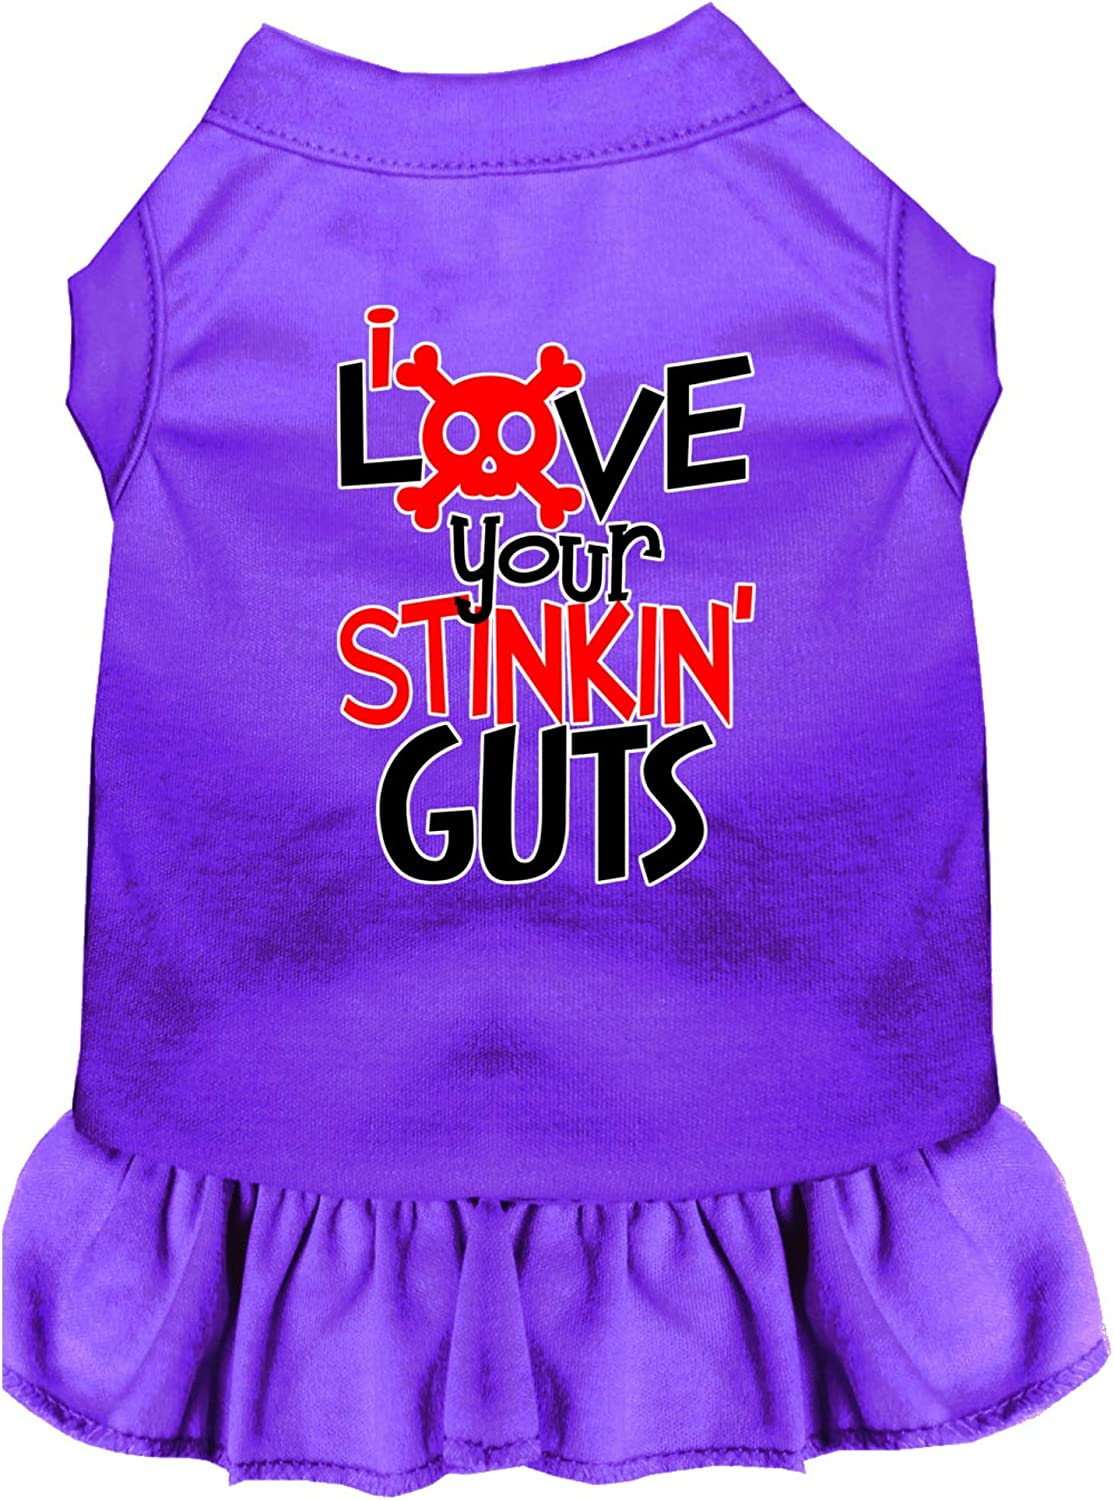 Mirage Max Many popular brands 55% OFF Pet Product Love Your Stinkin Dress Print Screen Guts Dog